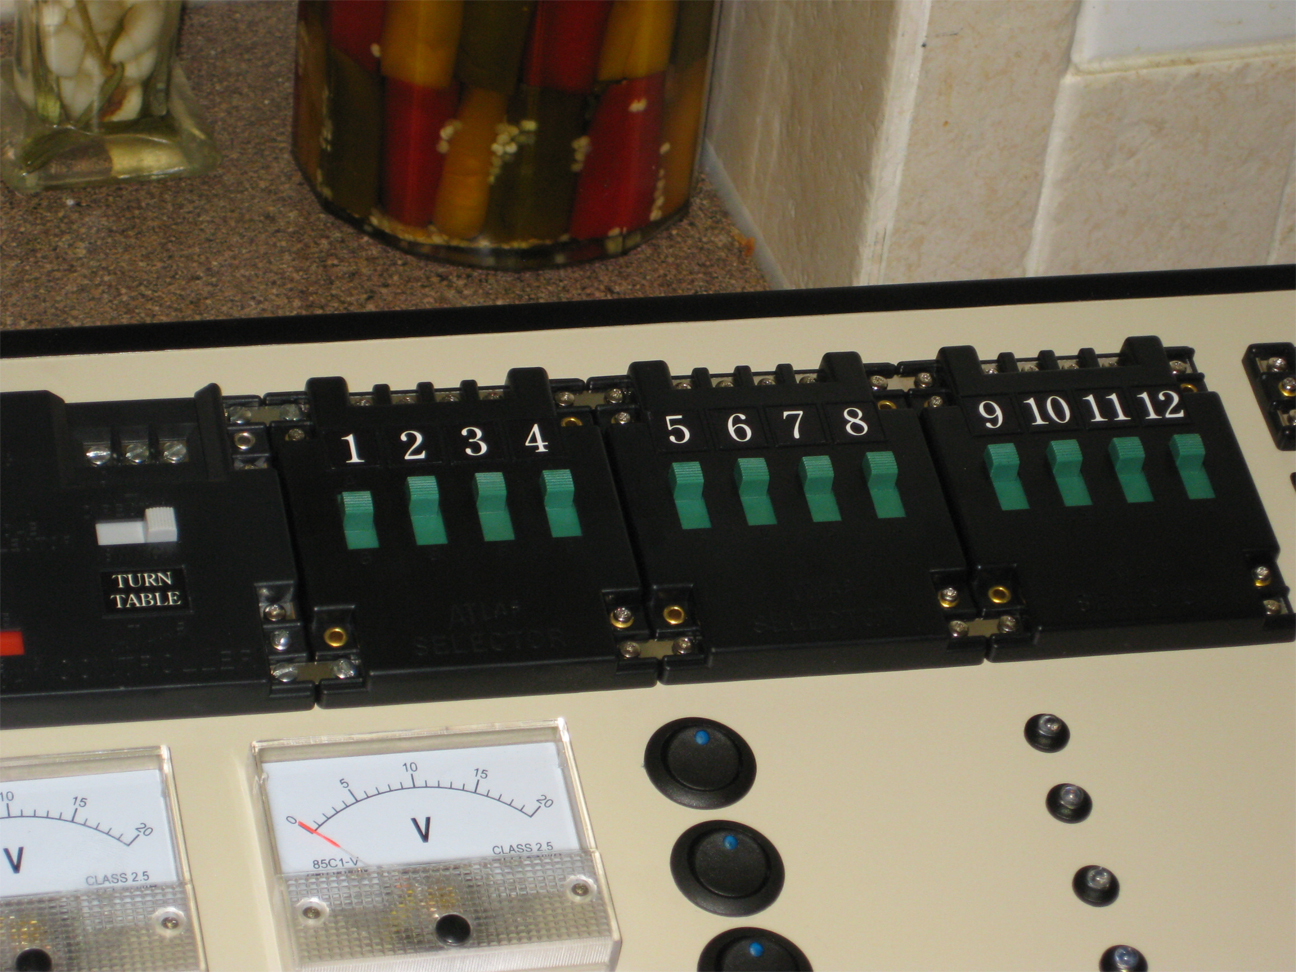 Control panel with Atlas selectors and homemade number labels installed